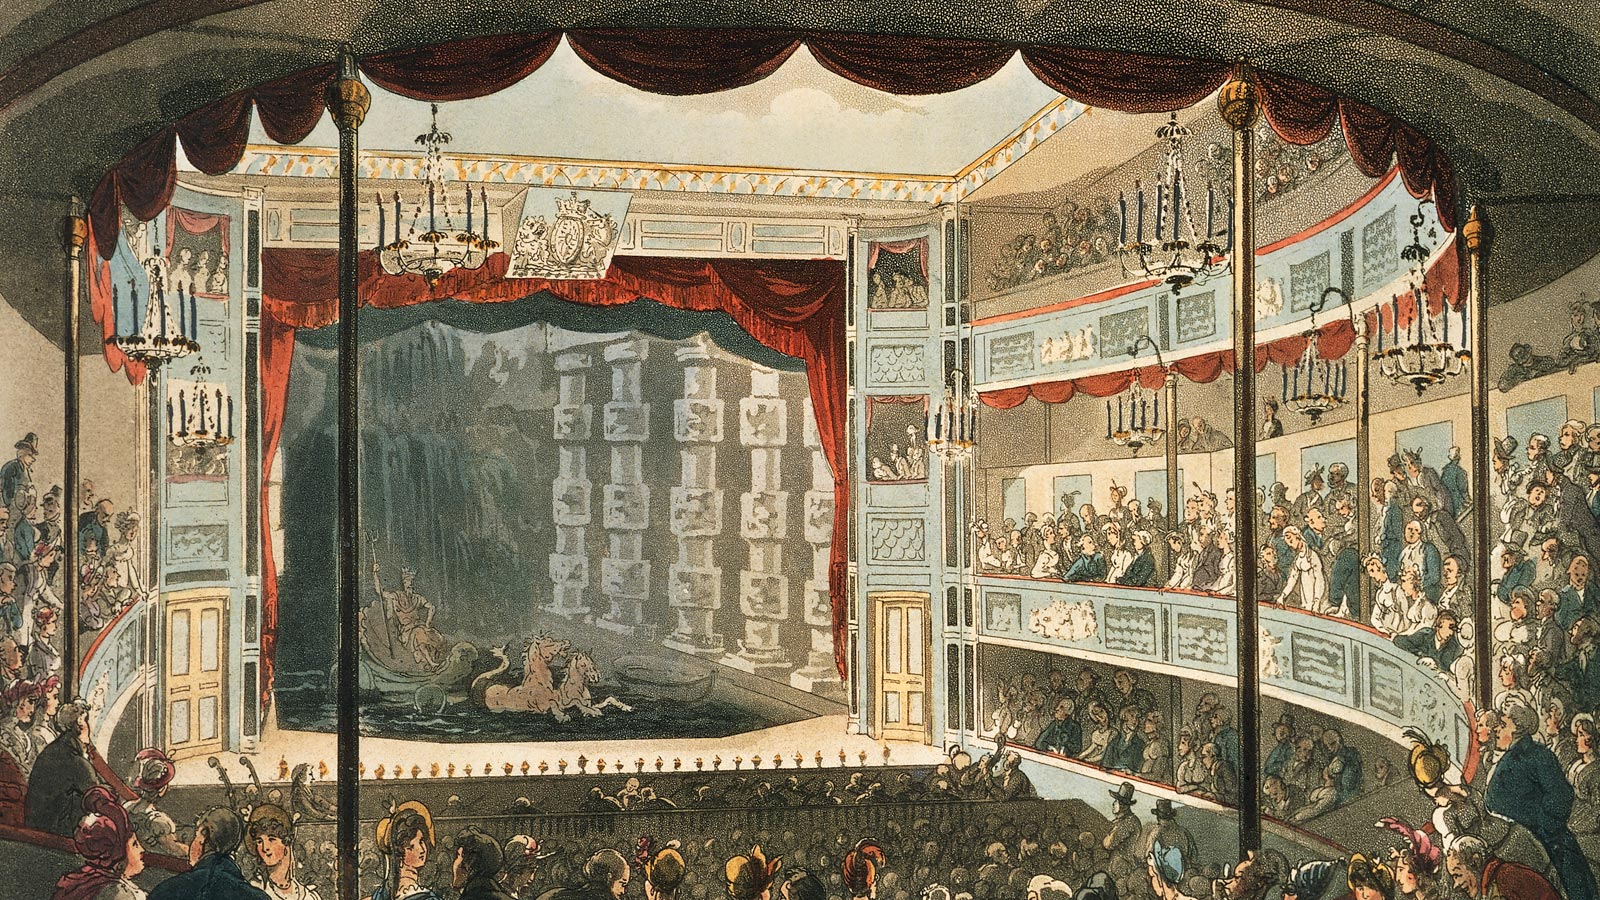 Theatre in the 19th century